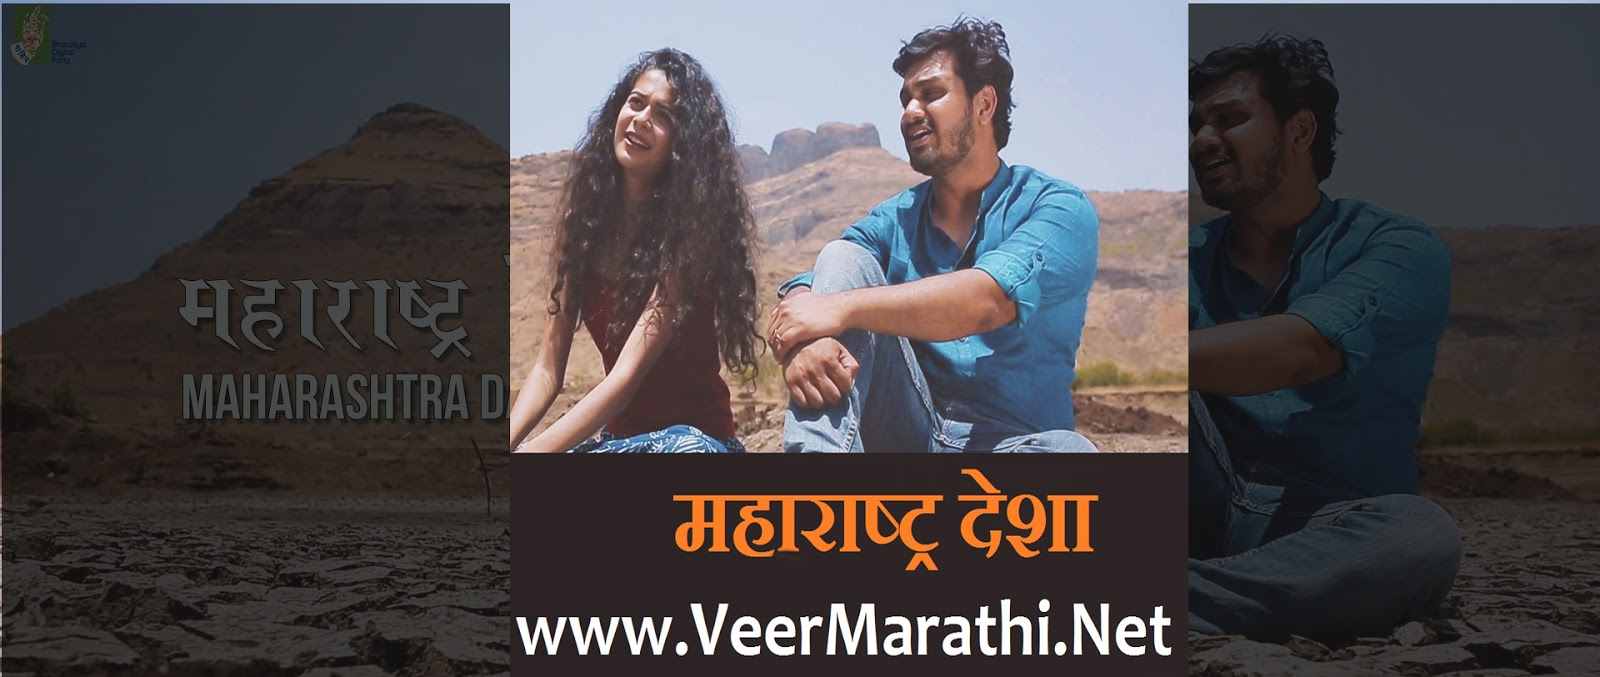 Their Marathi songs are dying